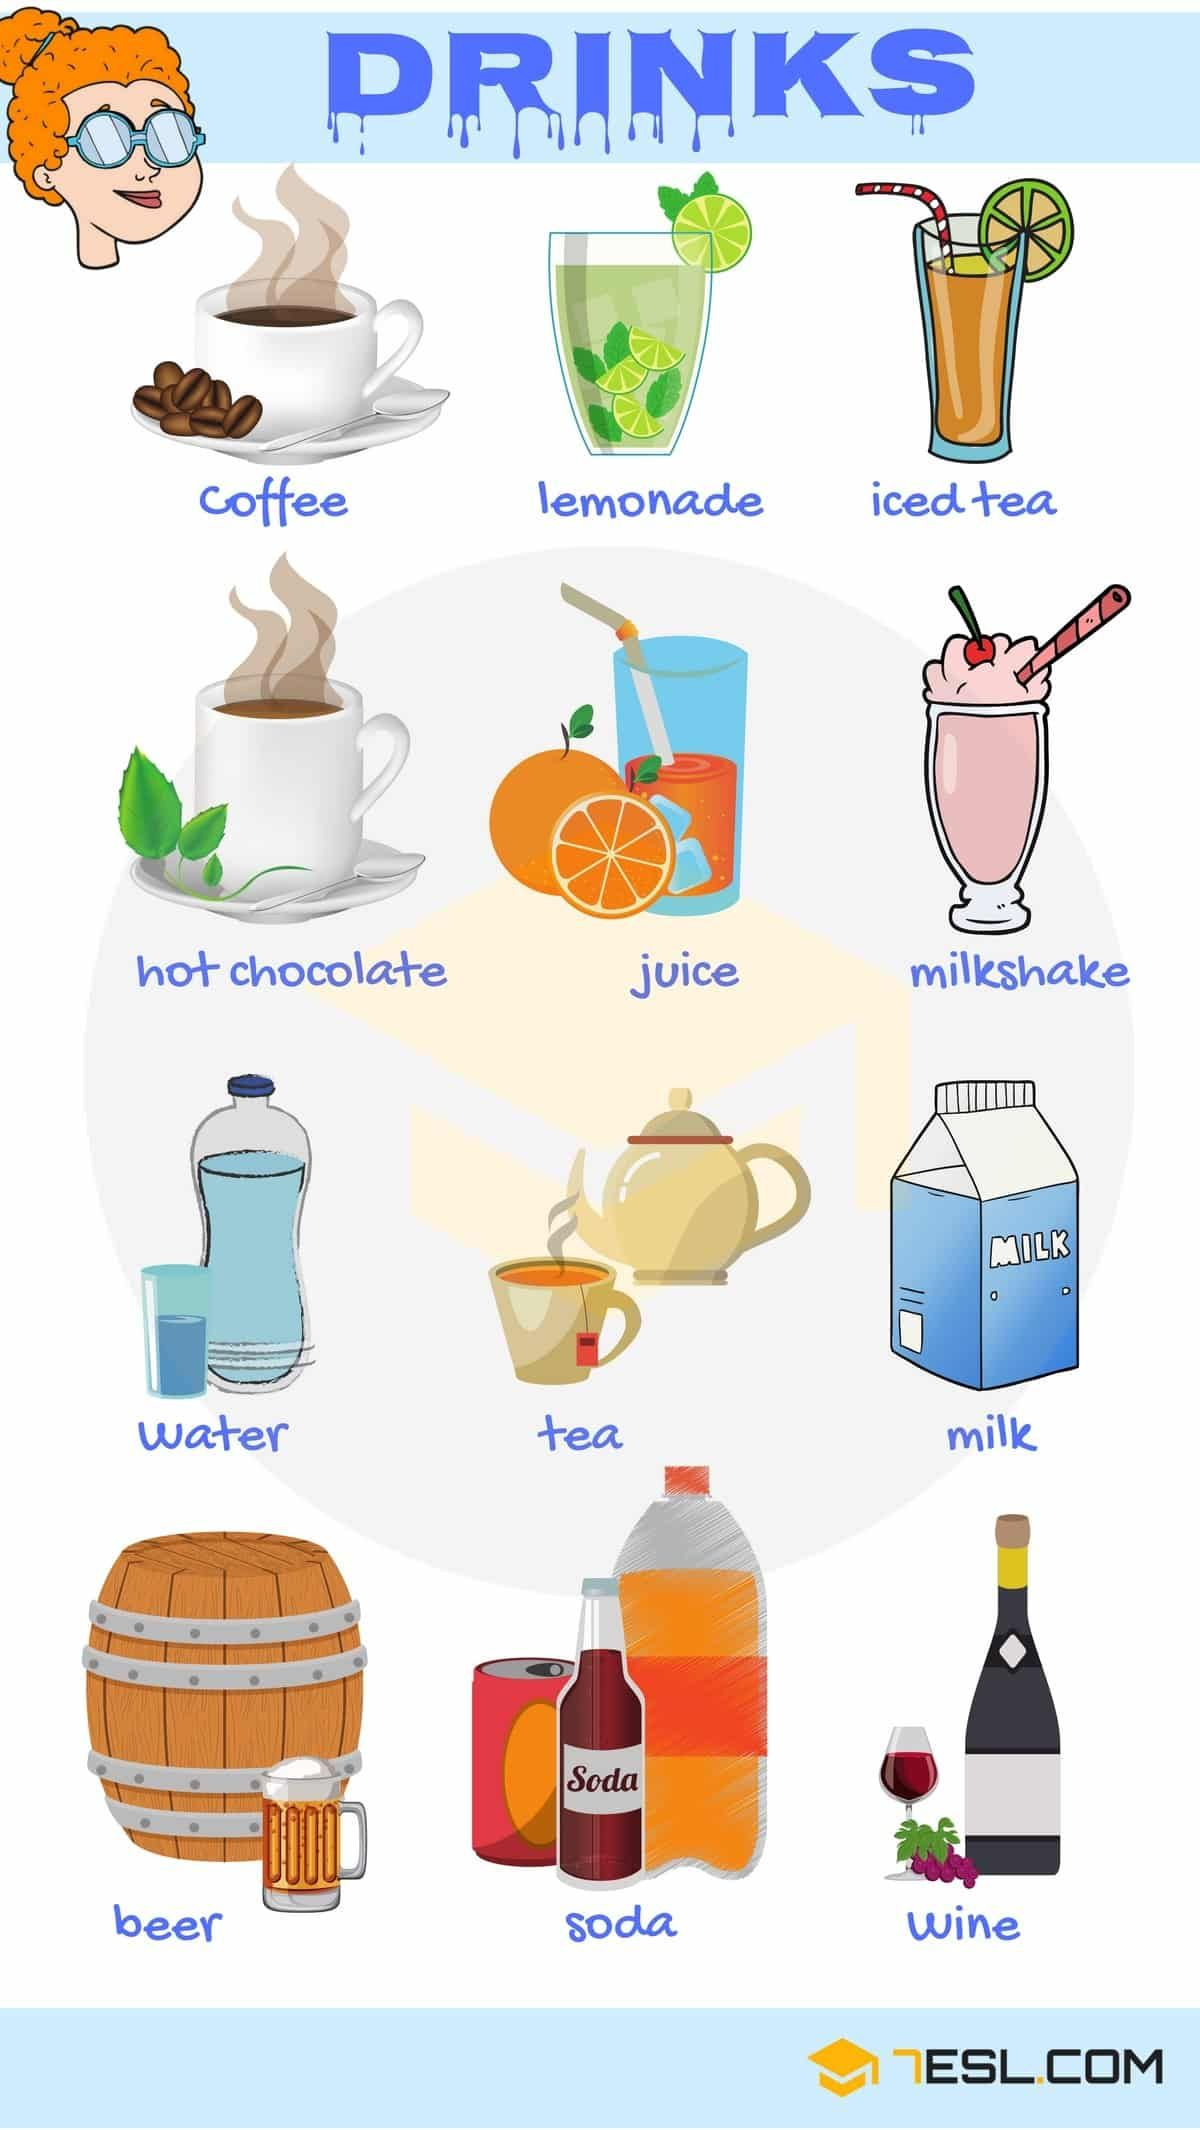 drinks food vocabulary beverages english drink names types ingles 7esl juice tea milk water coffee different kinds flashcards imagenes para